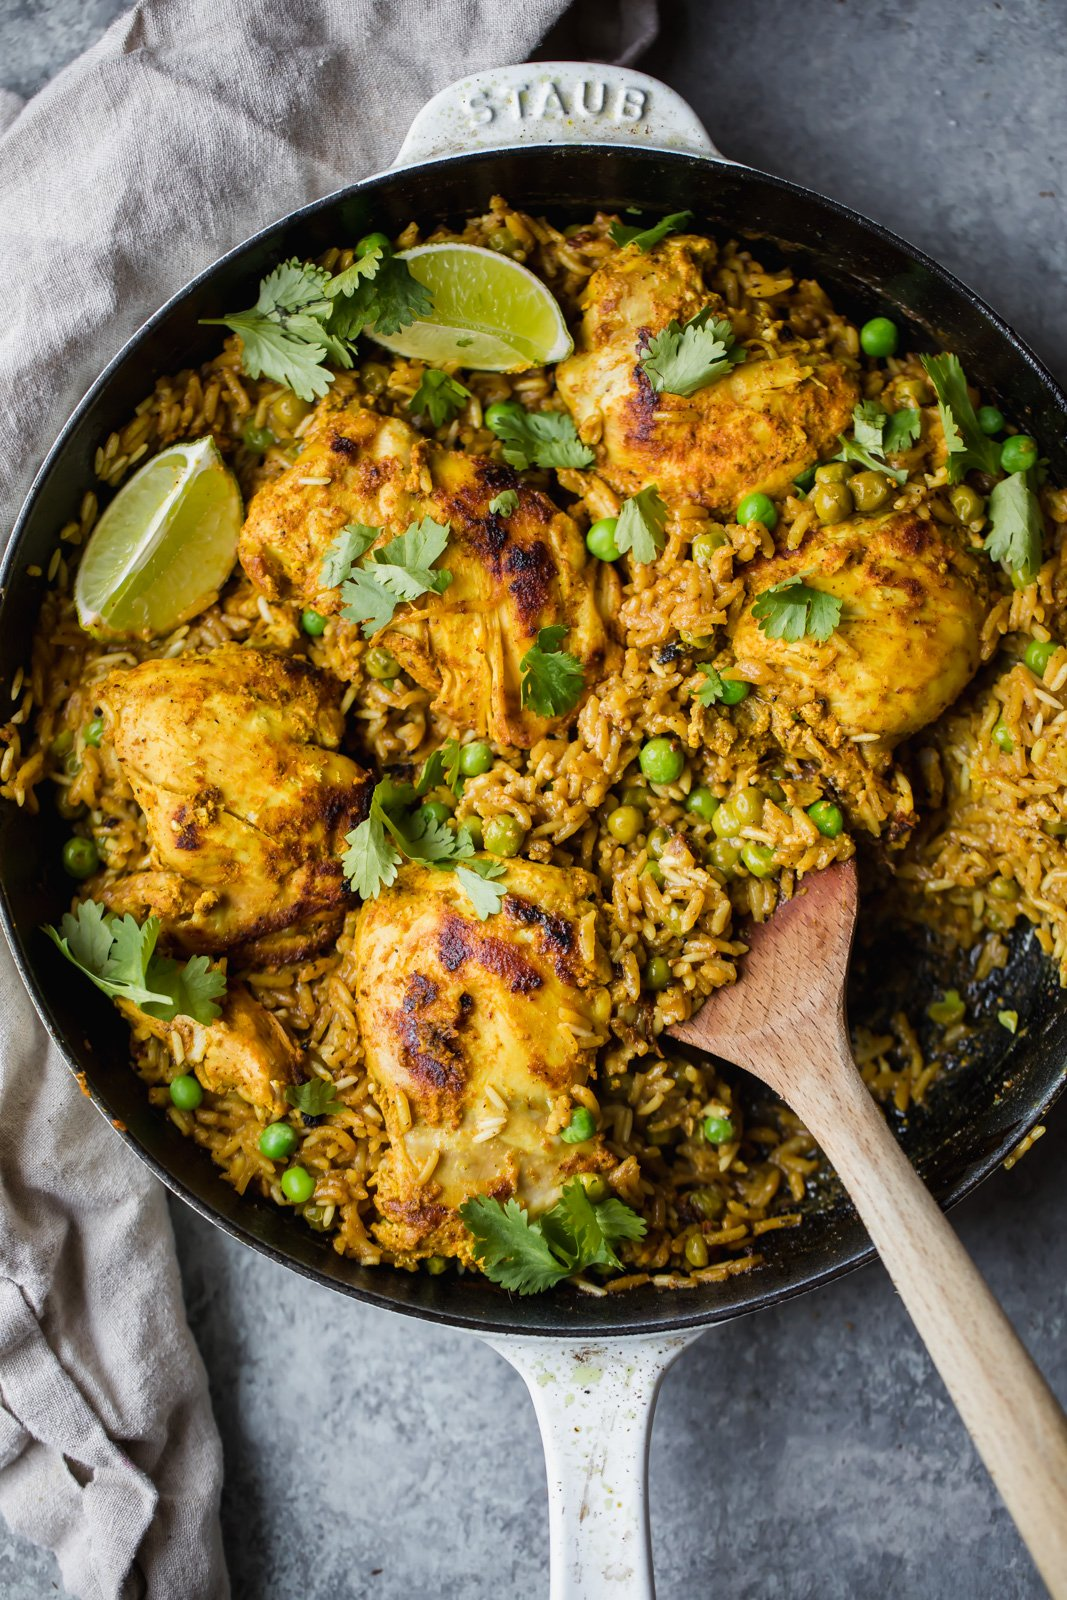 Tandoori chicken and rice in a pan with a wooden spoon